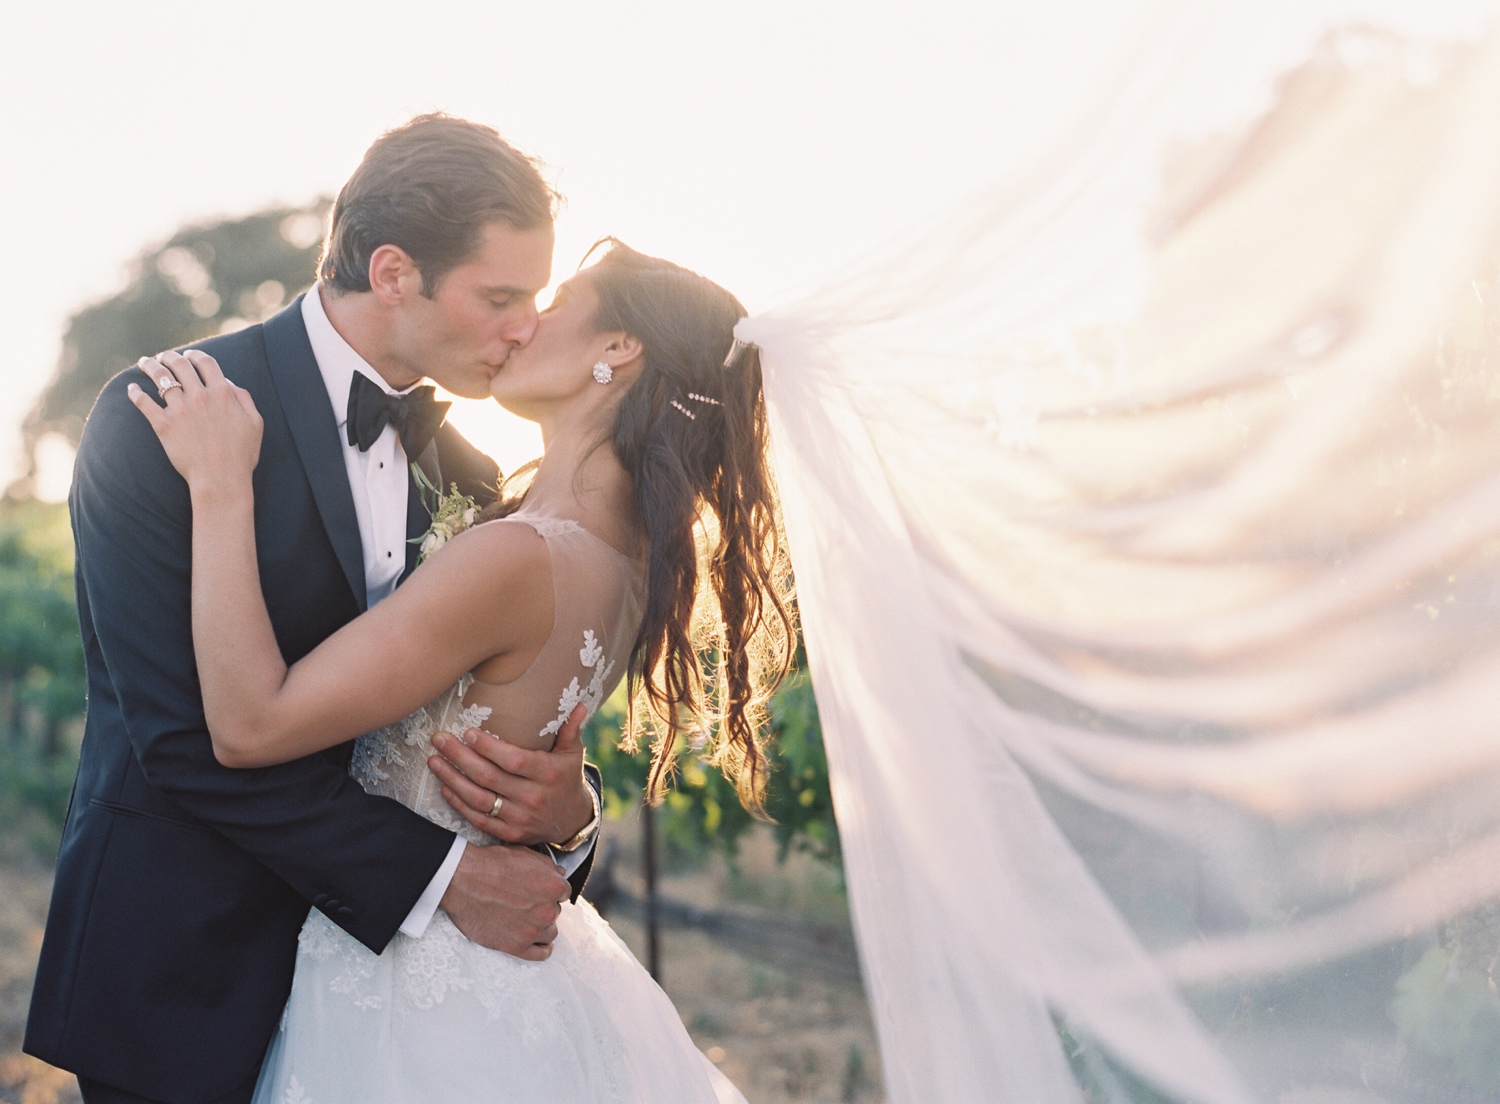 Newlyweds kissing at sunset with veil catching in the wind